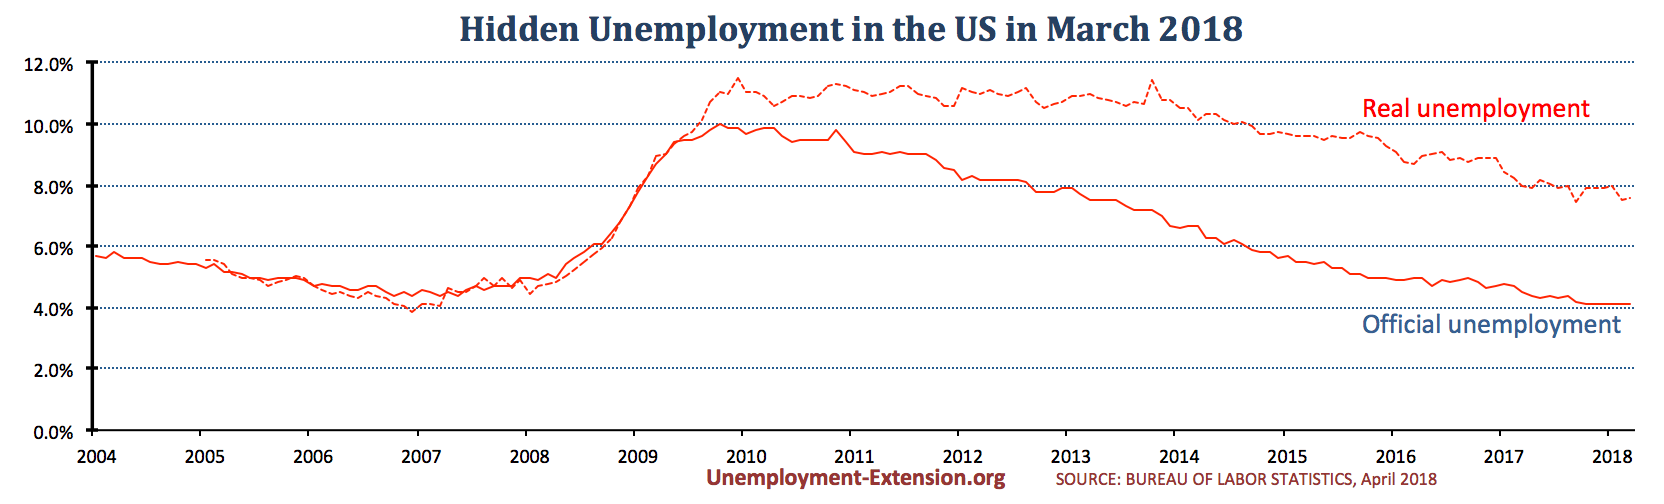 Real unemployment rate in the US in February of 2018 drops to 7.5% (down 0.5%).